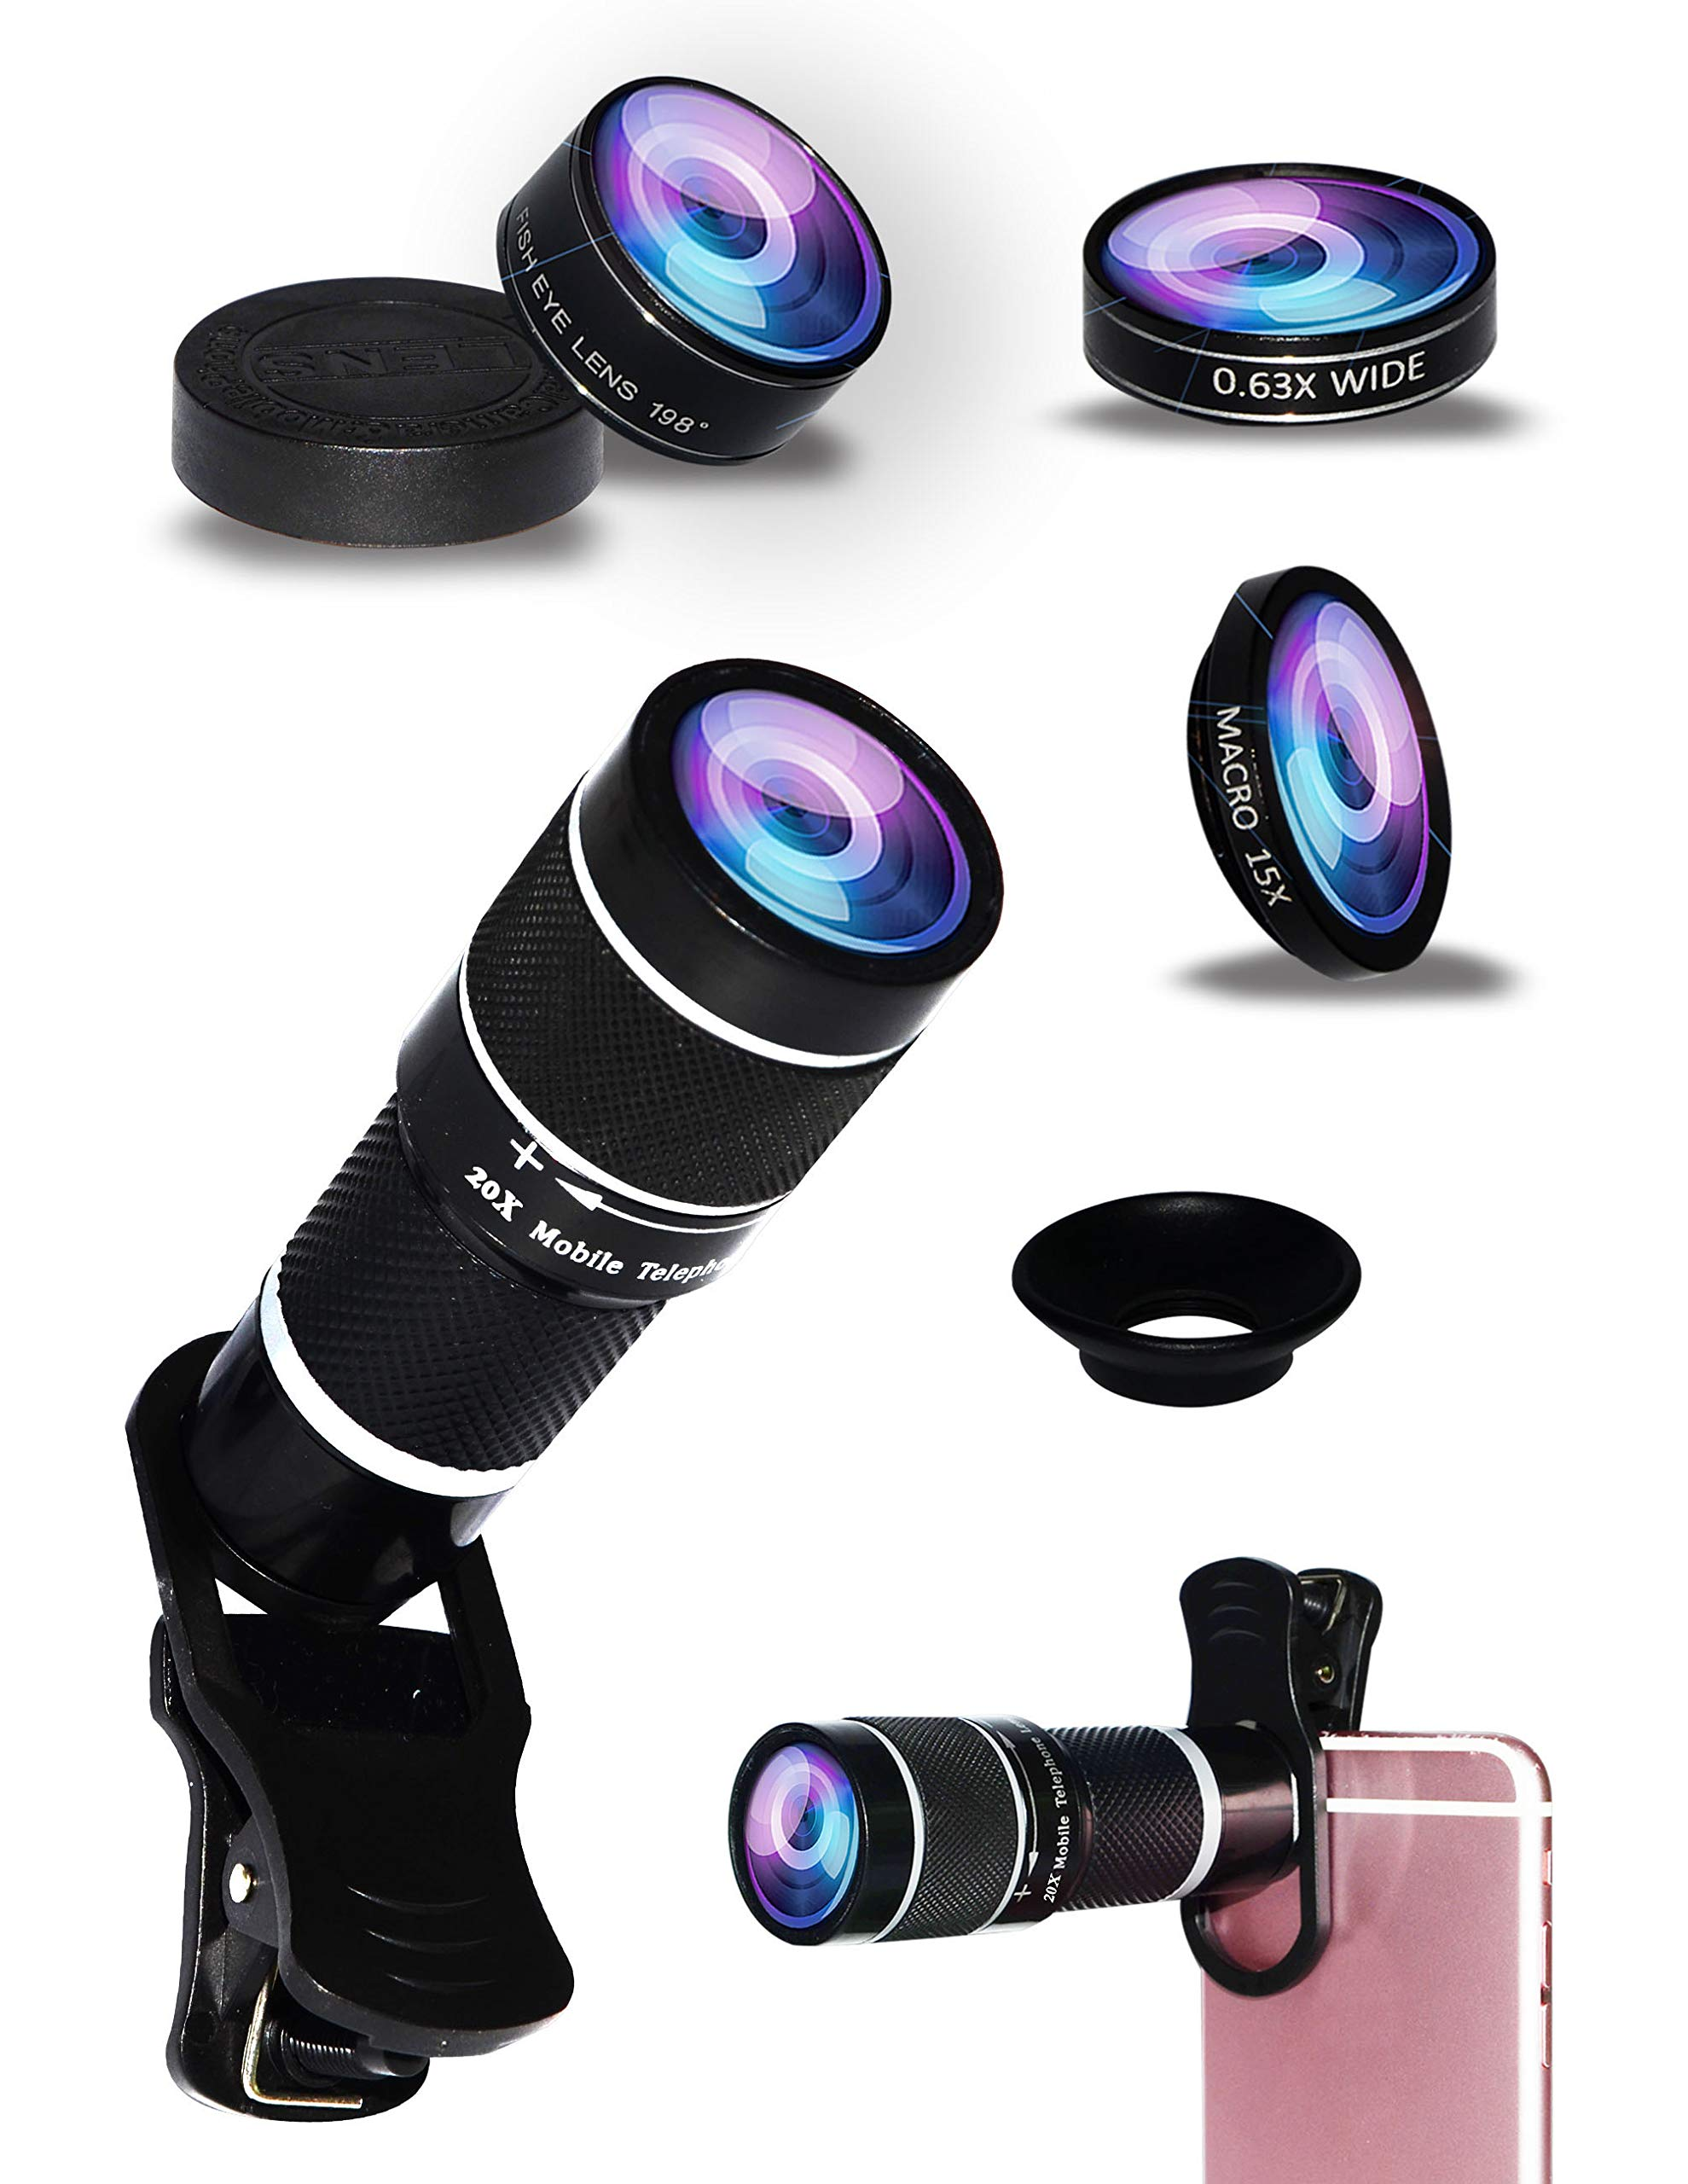 5-in-1 Phone Lens, 20x telephoto Lens, 0.63x Wide-Angle Lens, Macro Lens, fisheye Lens, Eye mask, for iPhone X 8 7 6 Plus 6S Samsung Galaxy S9 S8 S7 Huawei and Most Android Smartphones